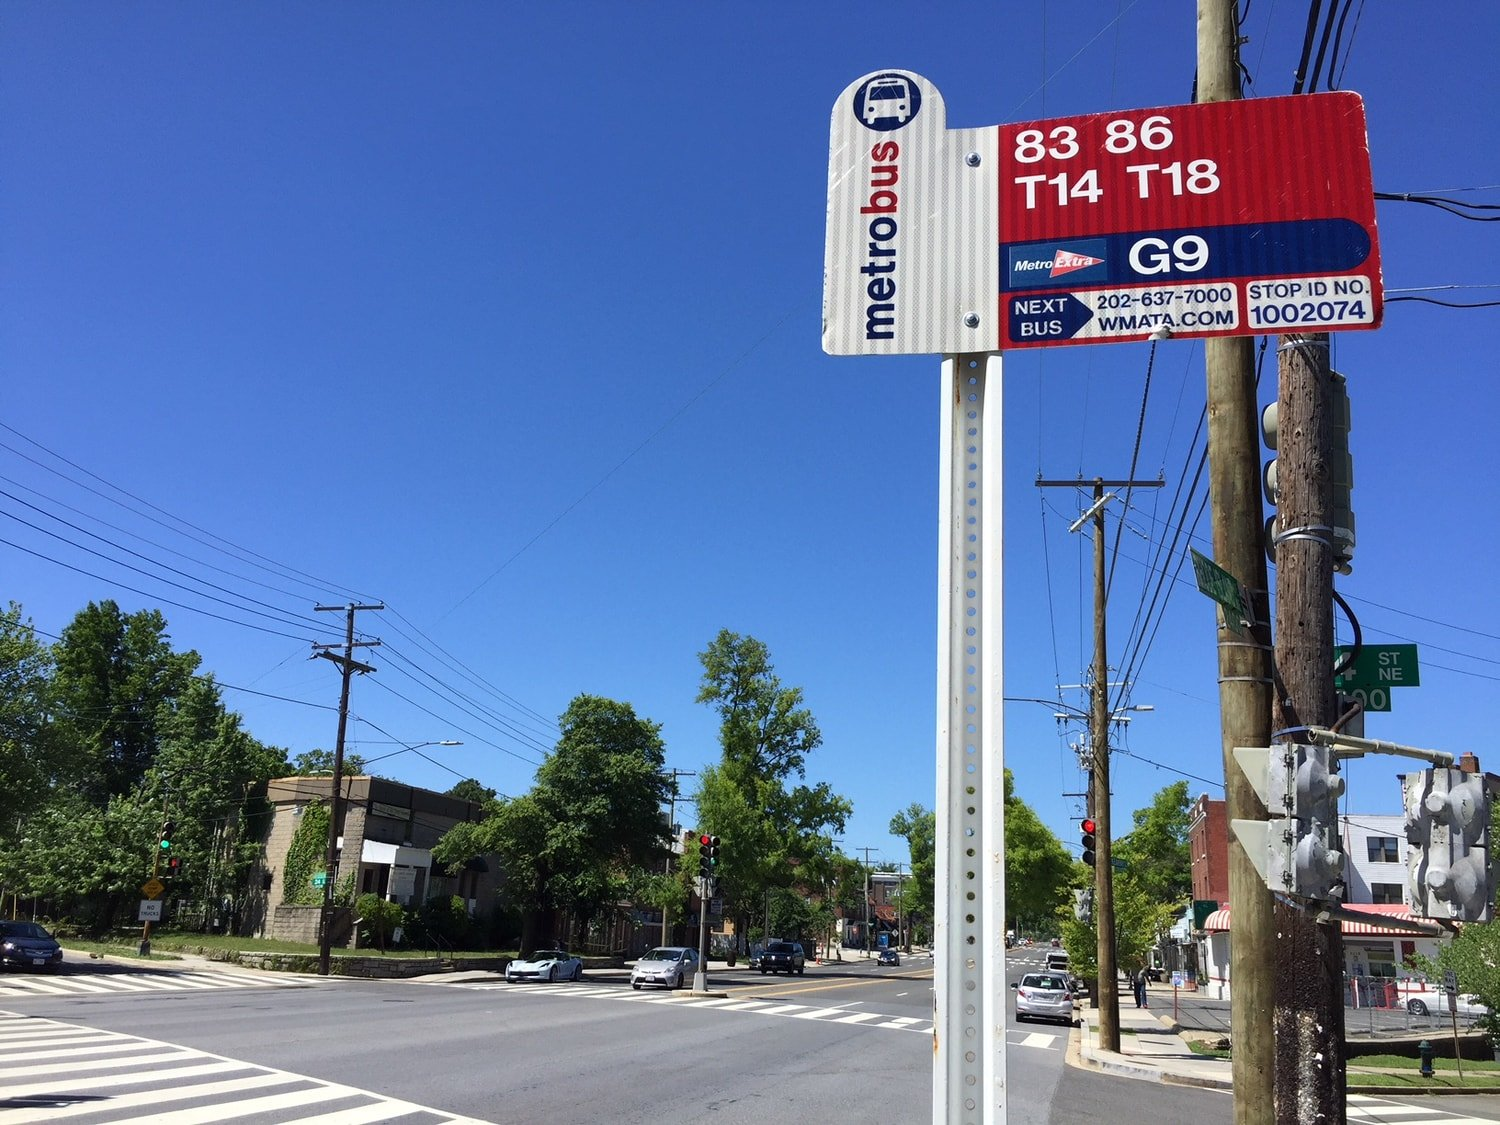 Metro Bus Stop - Woodridge - Washington, DC